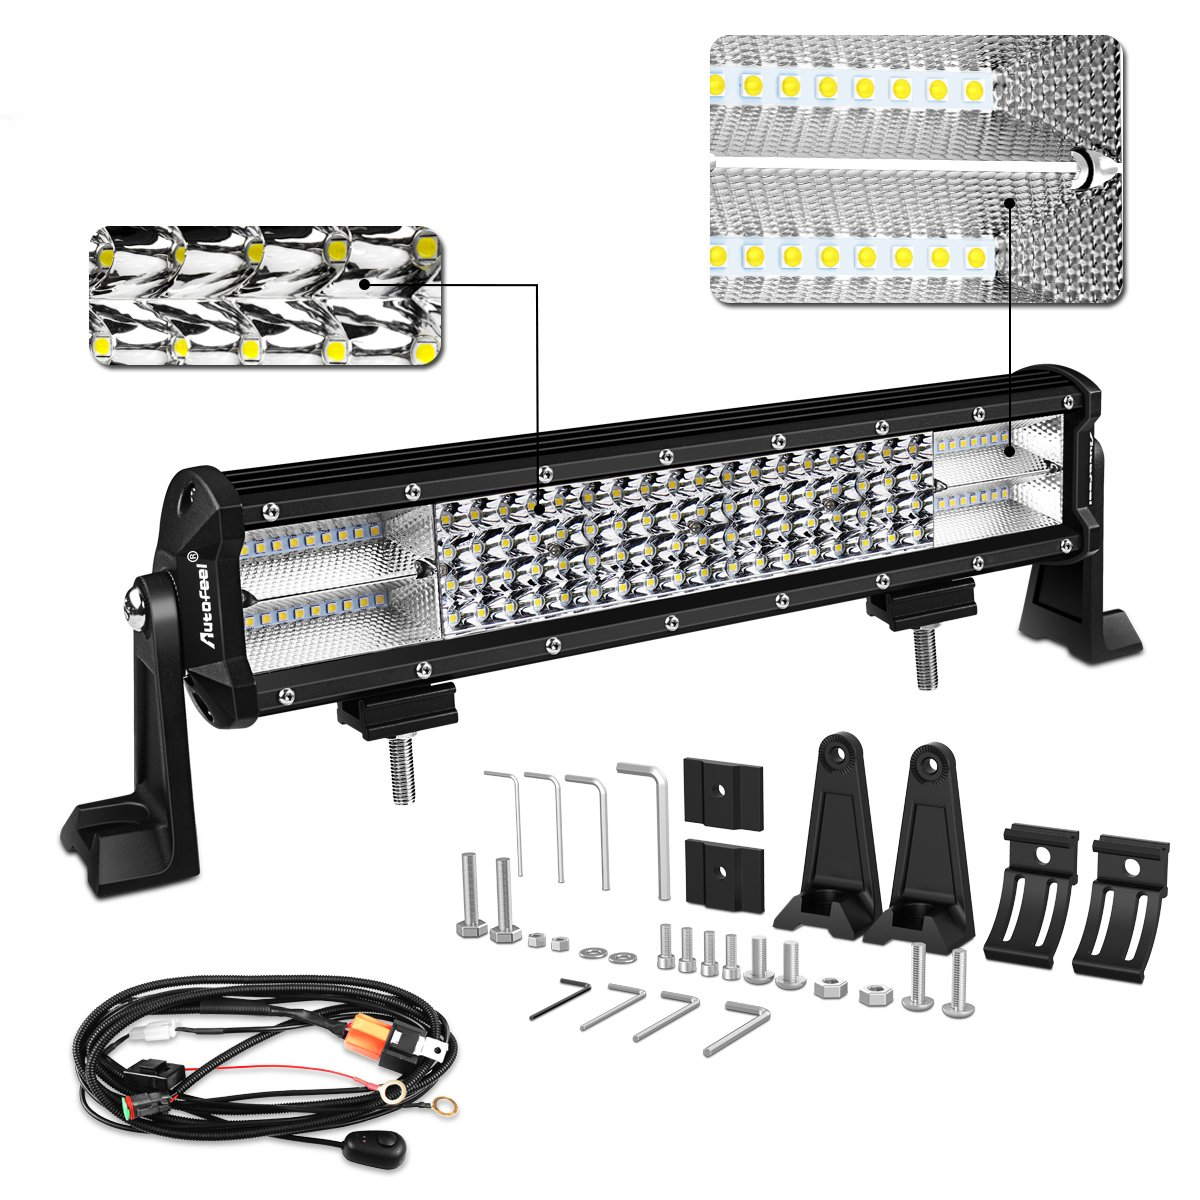 Led Light Bar Autofeel 12 Inch 210w Quad Row Driving Lights Spot Wiring Harness Flood Combo Beam